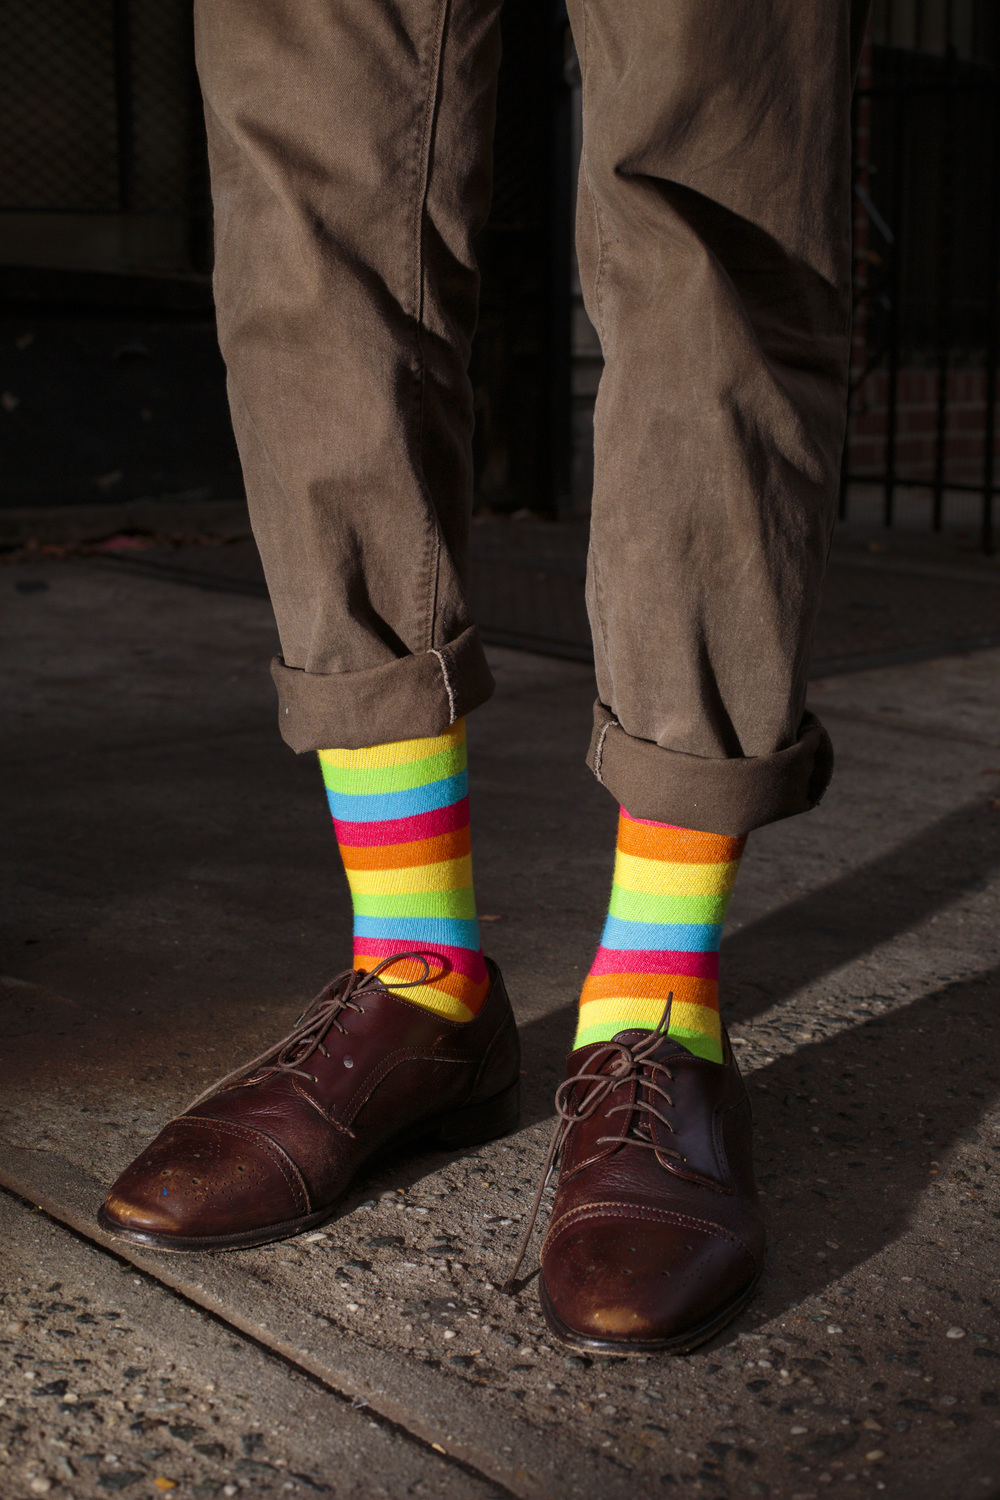 New York, USA - October 31, 2015: A passerby wears rainbow socks on 2nd St. The Bowery, a street and neighborhood in Manhattan, once home for vagrants and a diversity of subcultures became the playground of artists, fancy bars and real-estate tycoons.